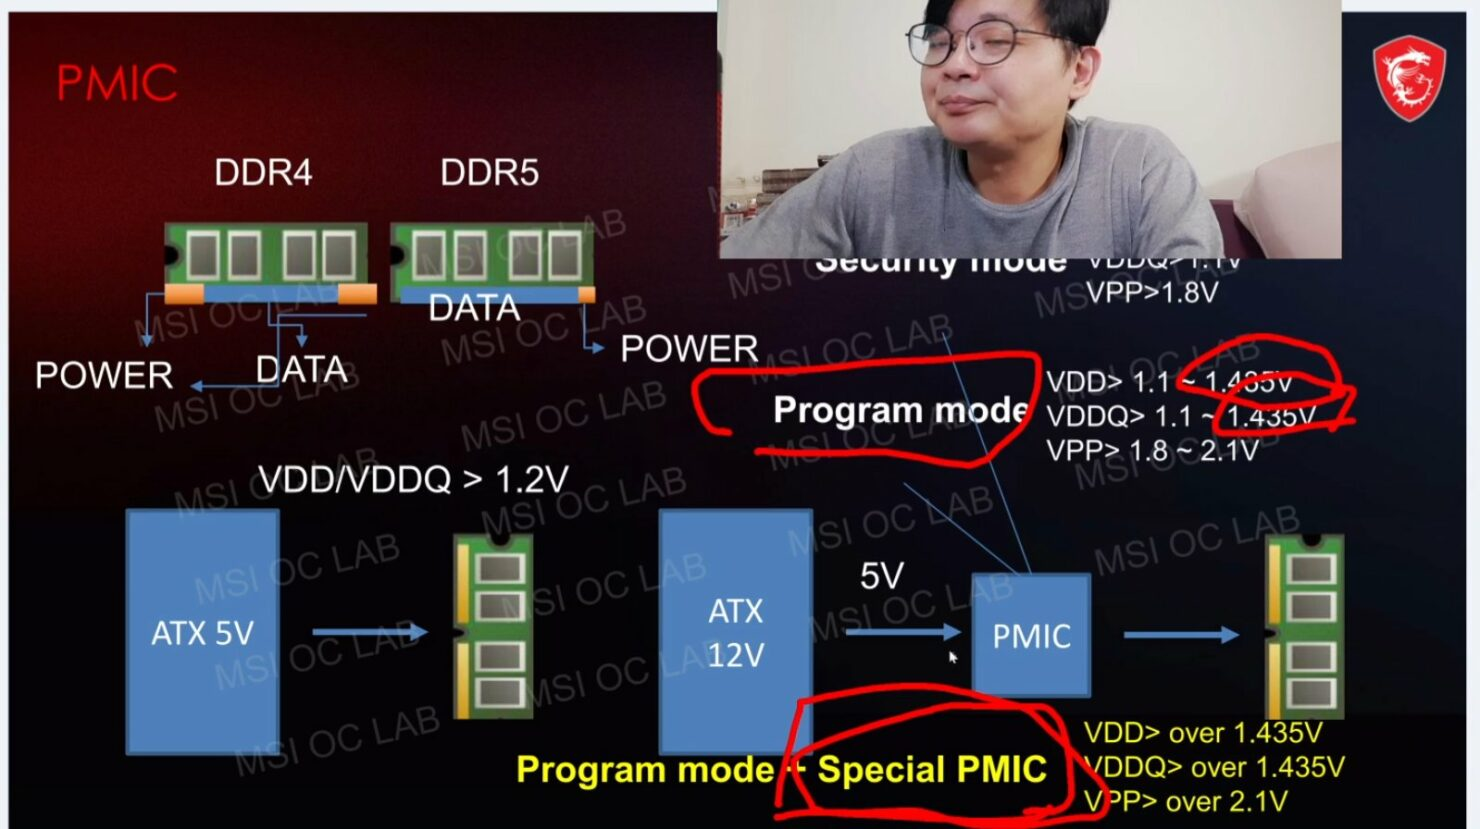 msi-ddr5-memory-power-supply-voltage-pmic-_2